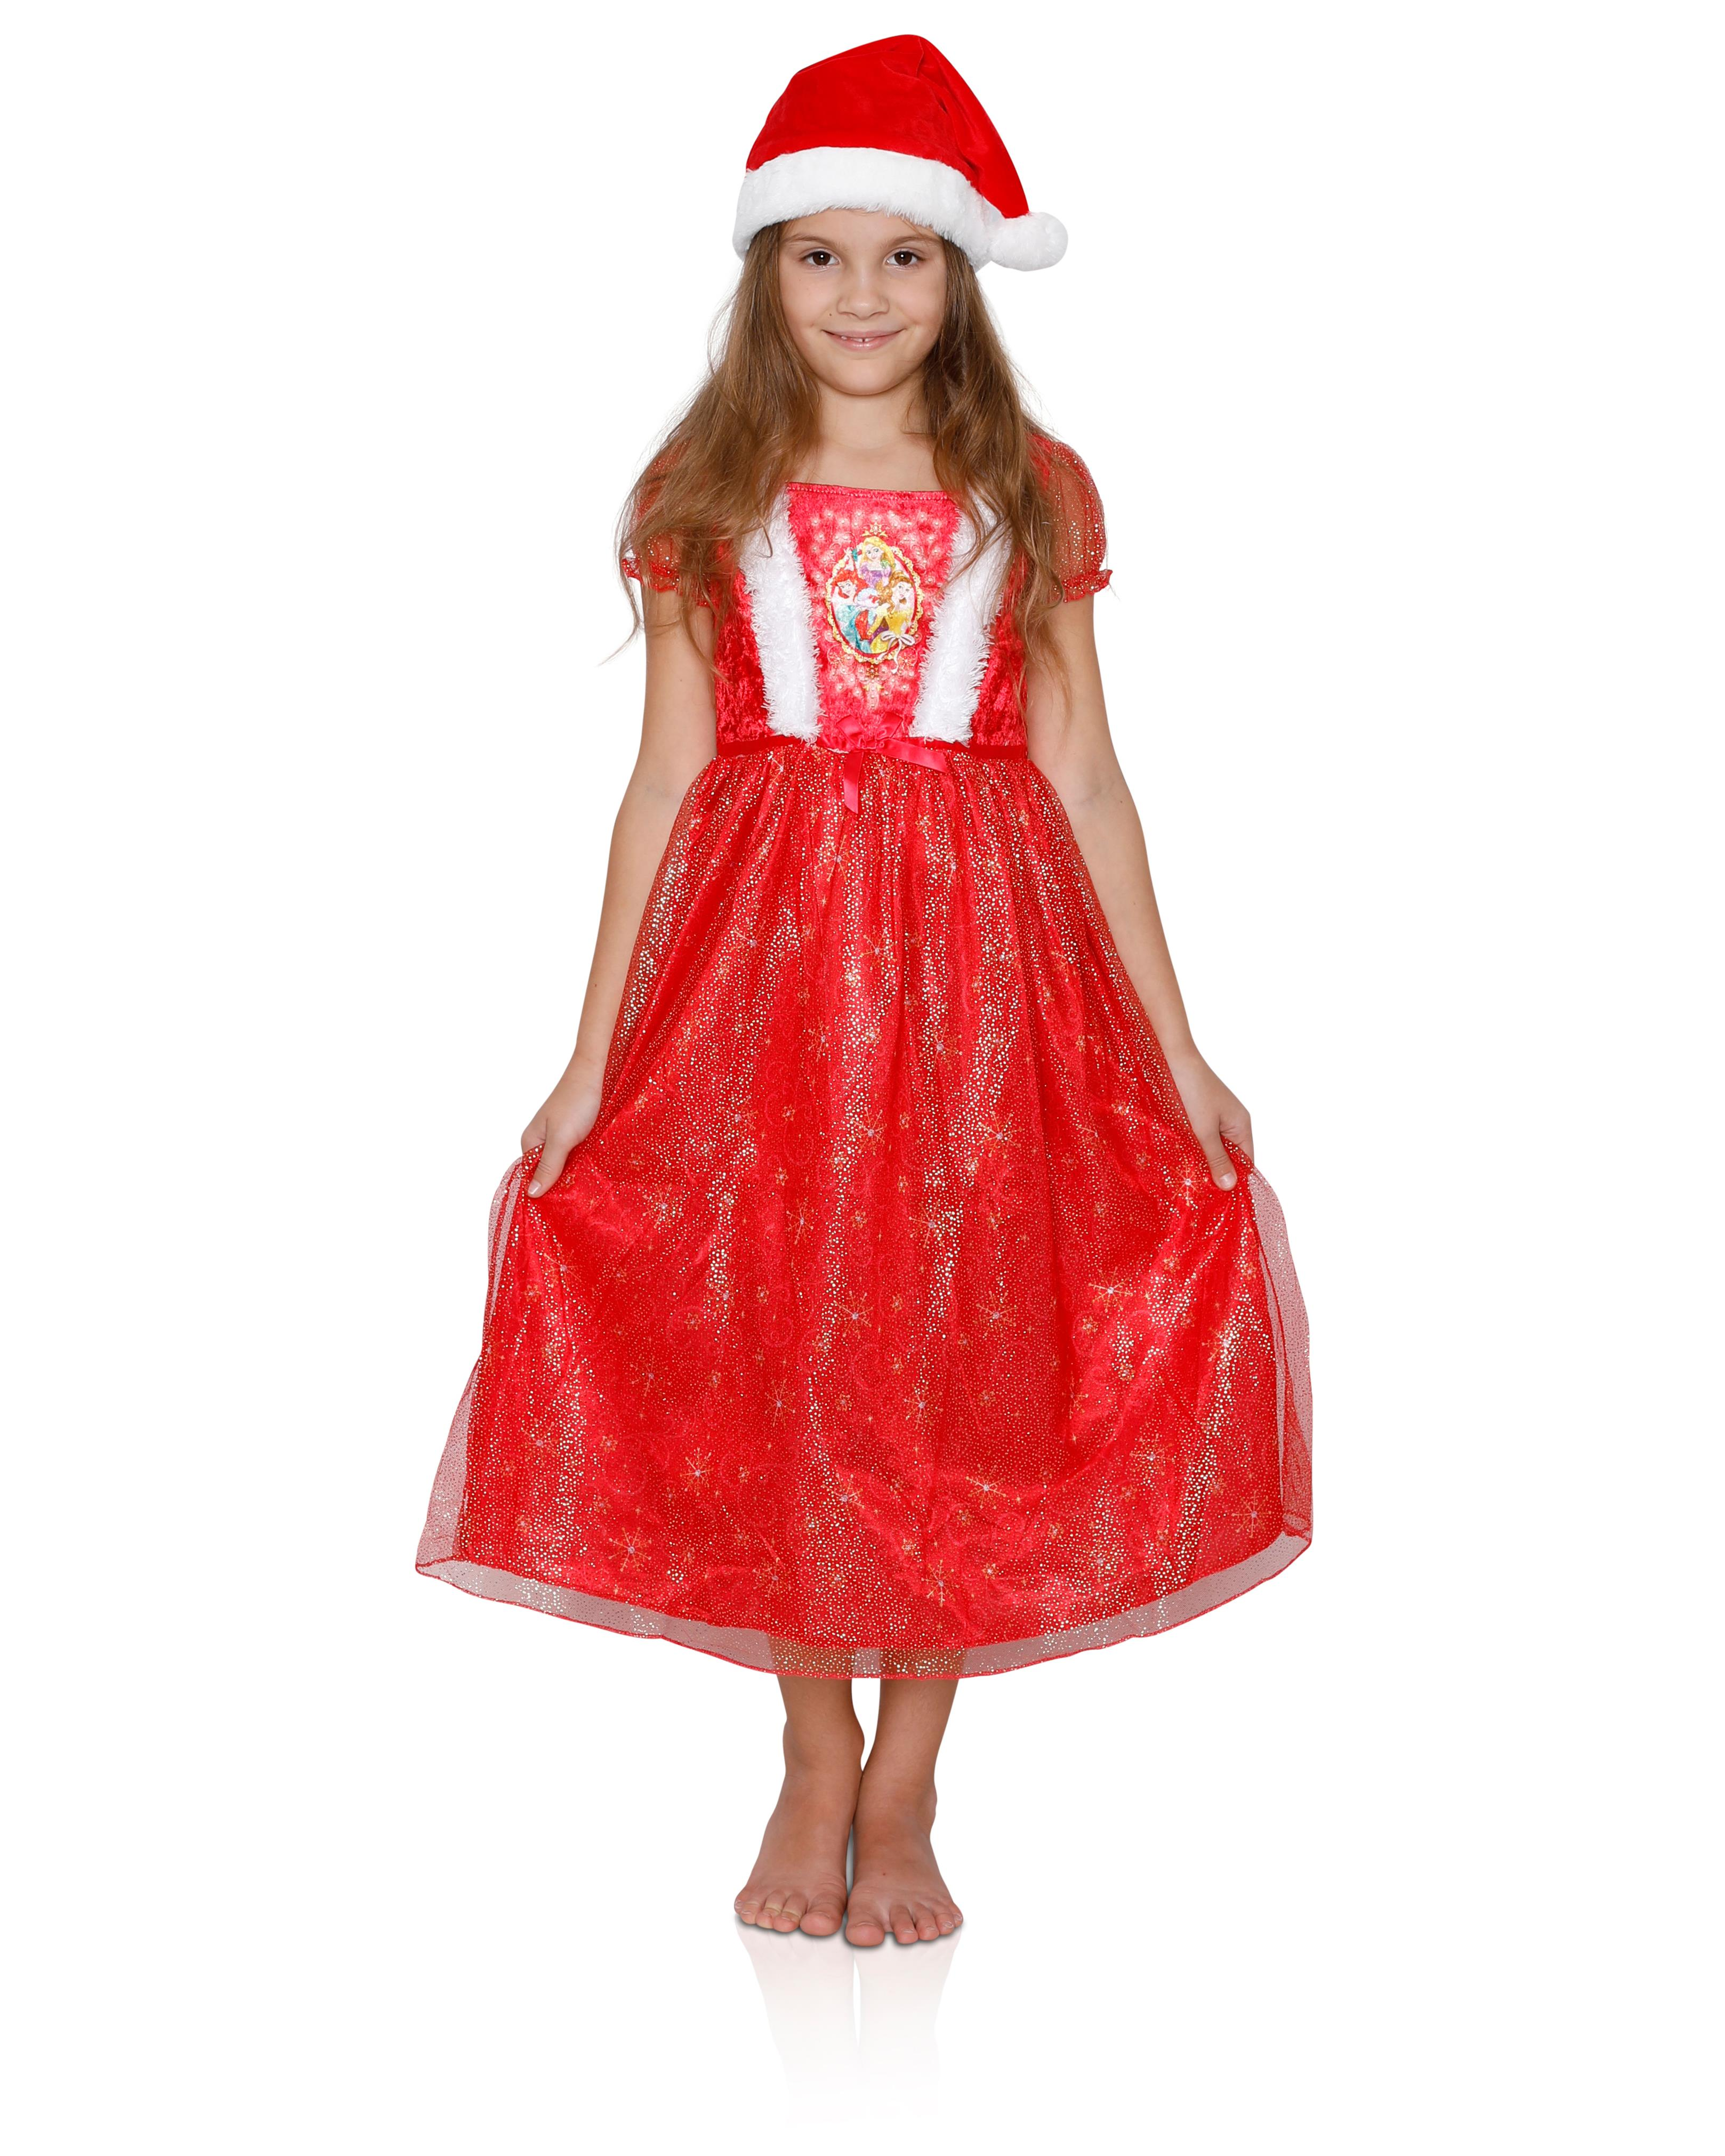 Disney Girls' Fantasy Nightgowns, Dressy Holiday Gowns, Princess Dress With a Hat, Size: 8